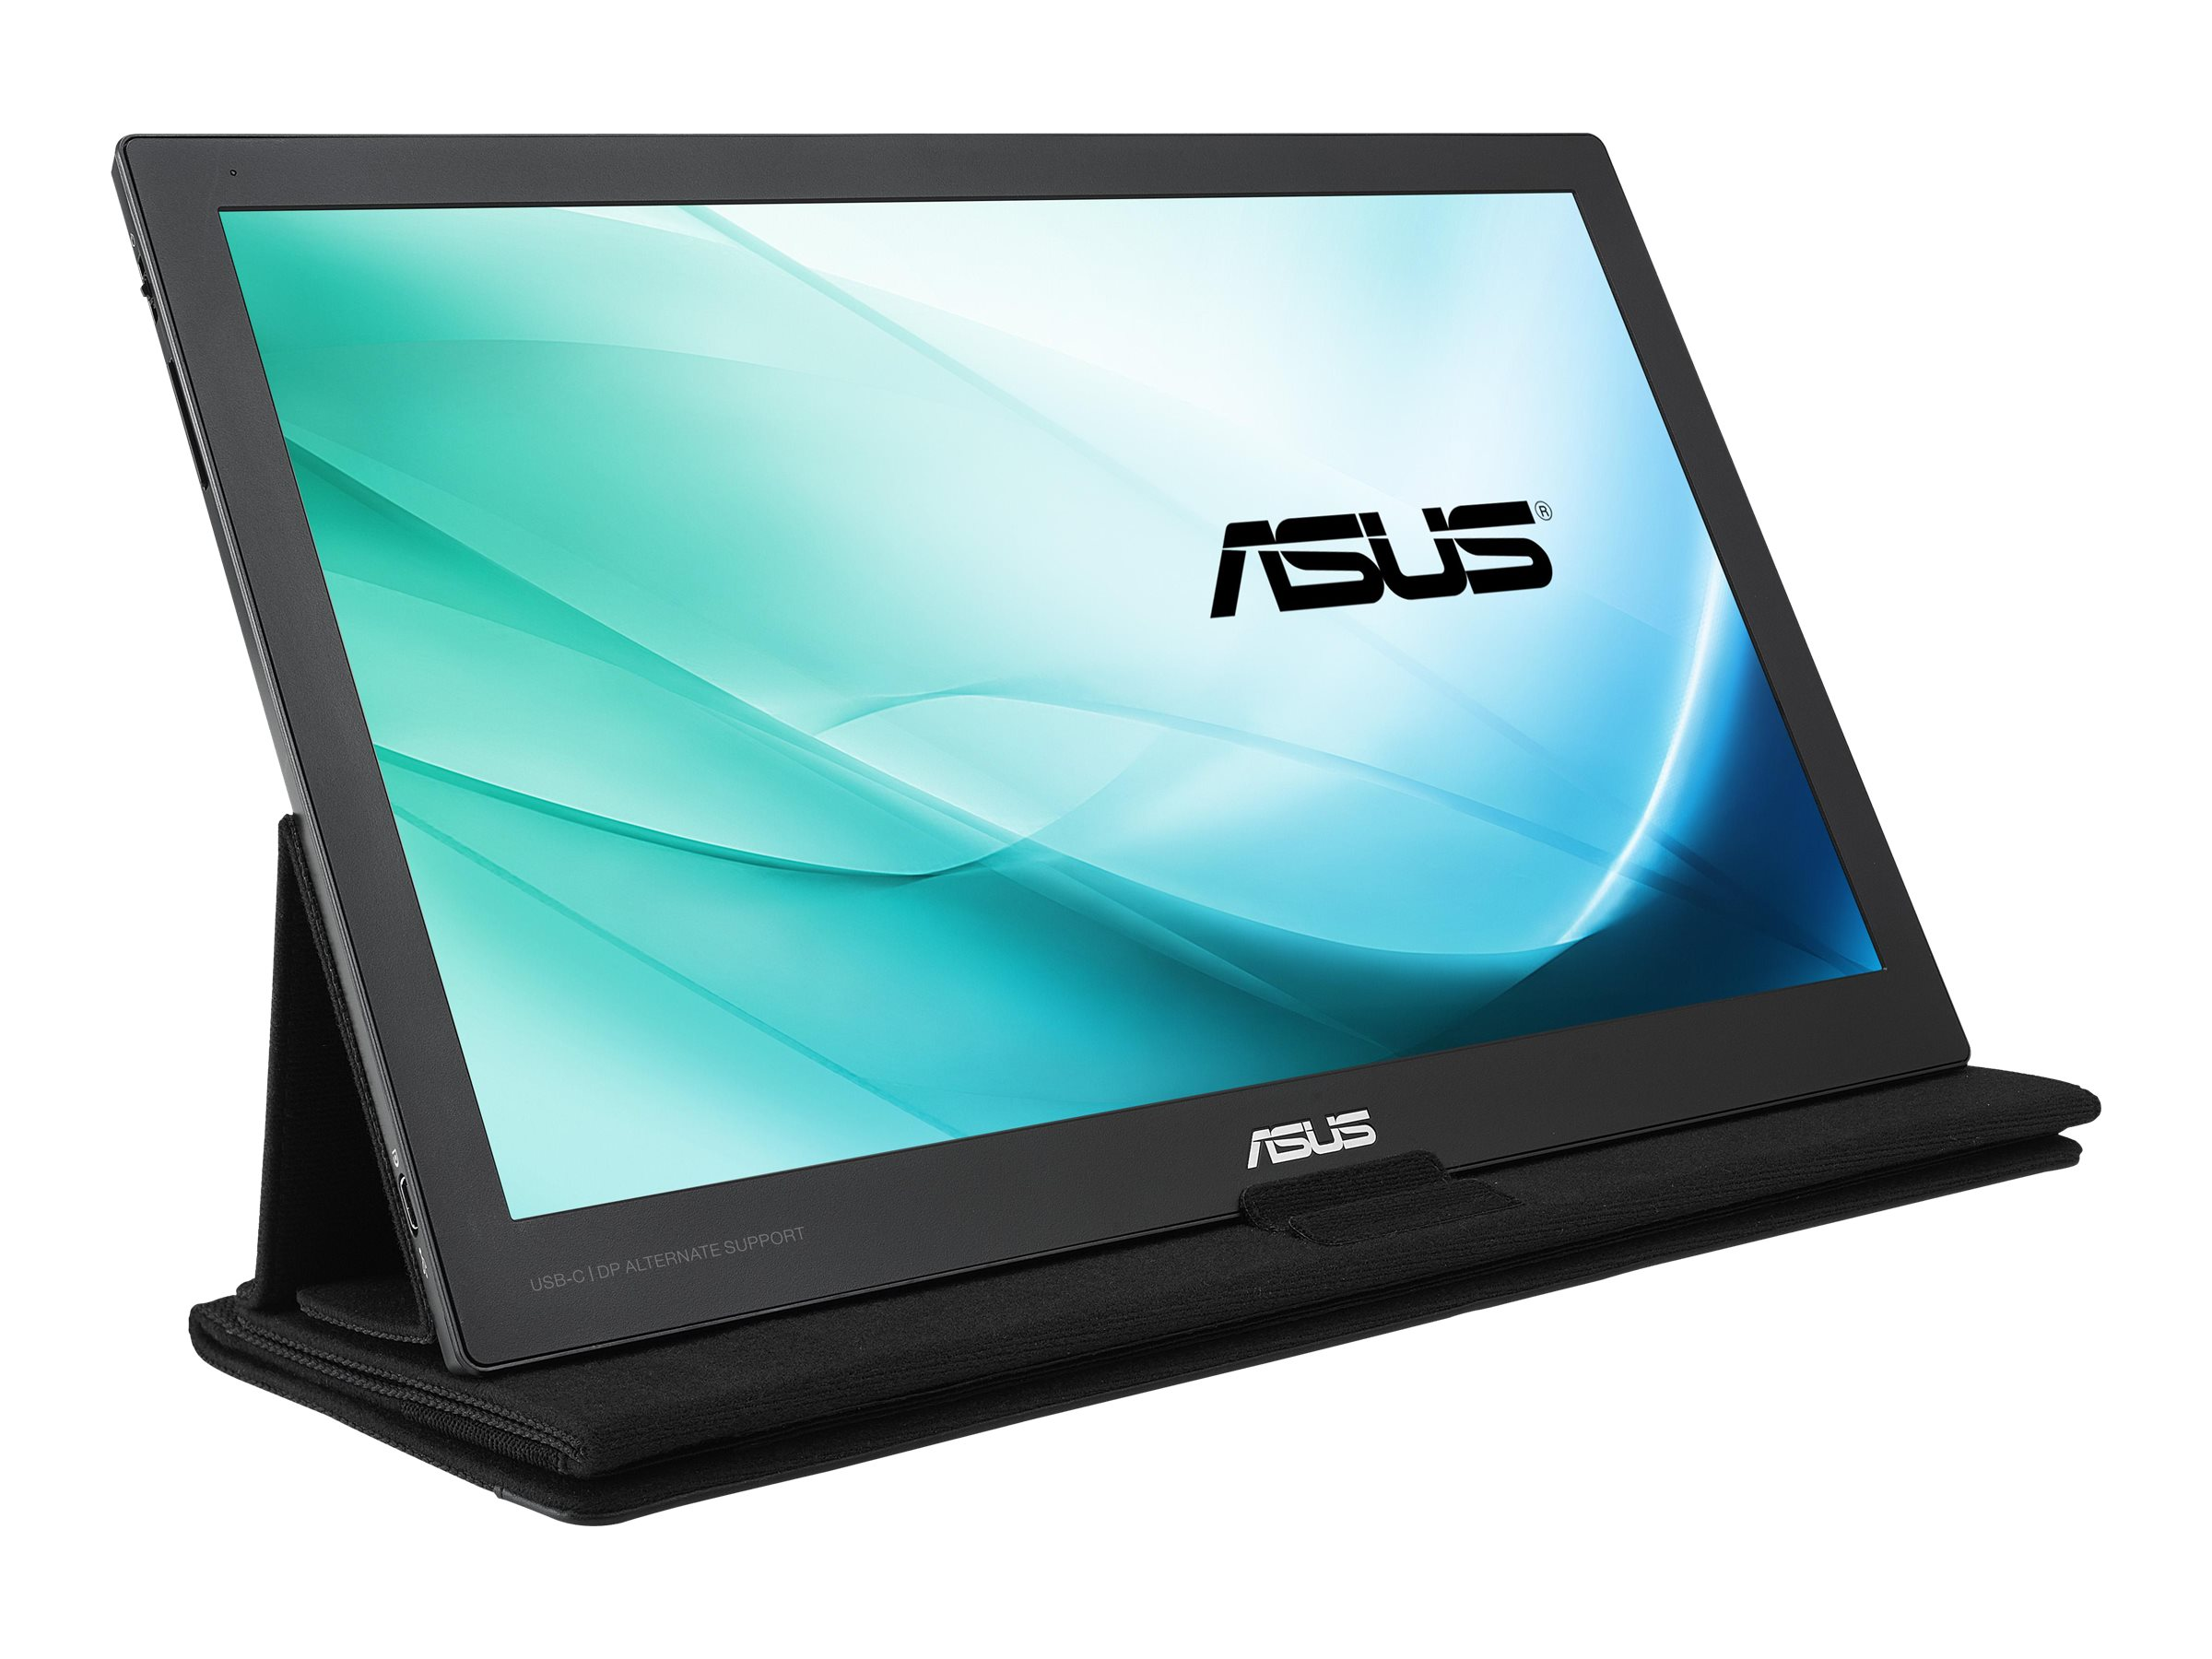 "ASUS MB169C+ - LED-Monitor - 39.6 cm (15.6"") - tragbar - 1920 x 1080 Full HD (1080p)"